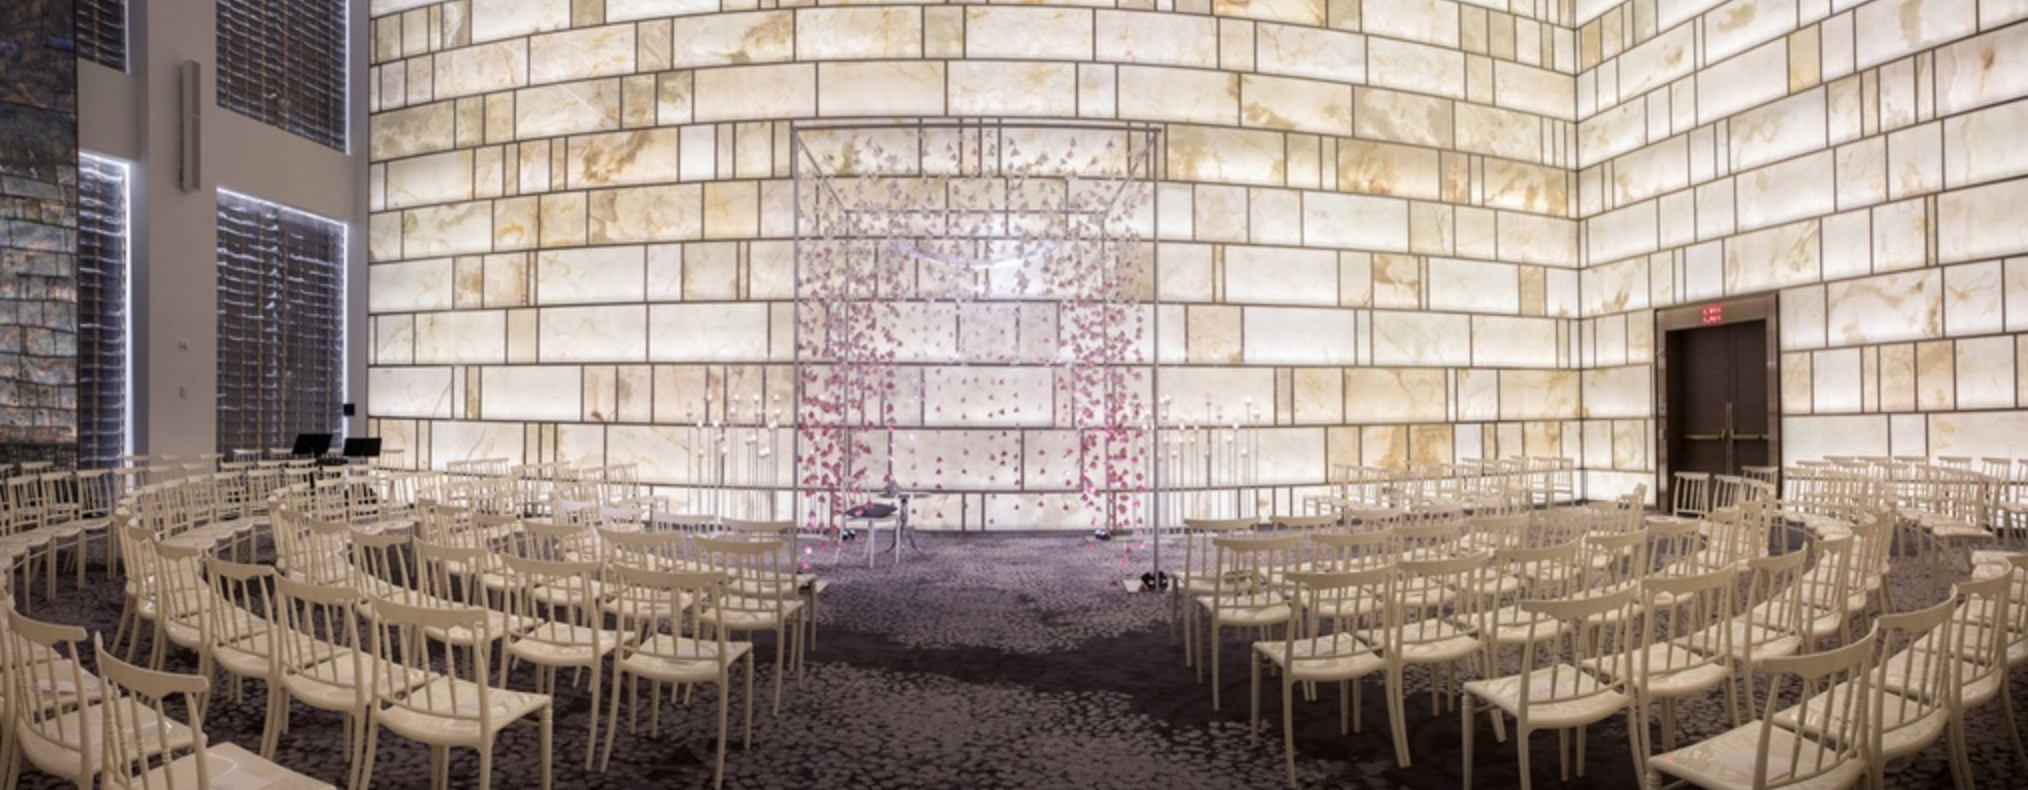 Inside Weddings: Sleek + Contemporary Wedding with Jewish Traditions in New York